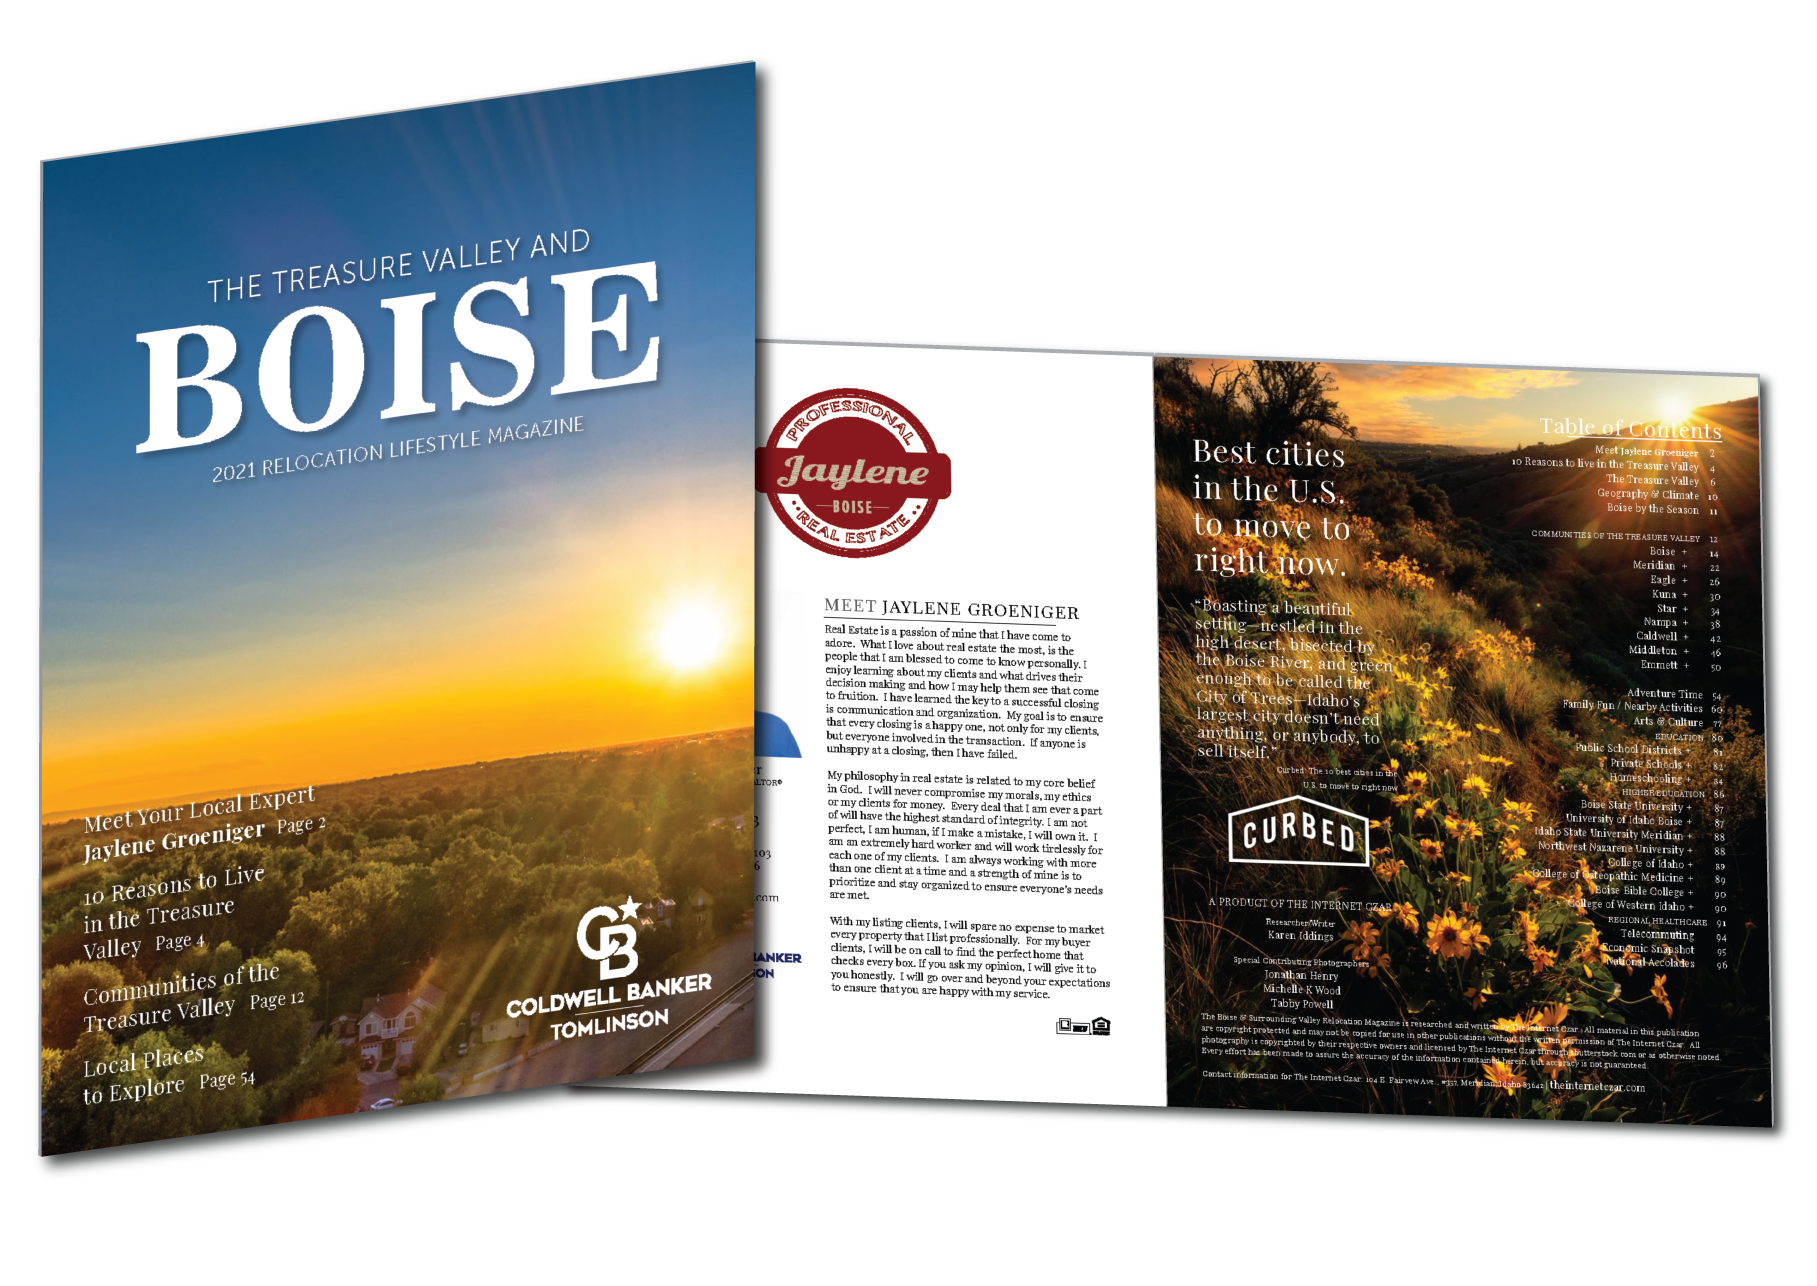 2021 Boise Relocation Lifestyle Magazine